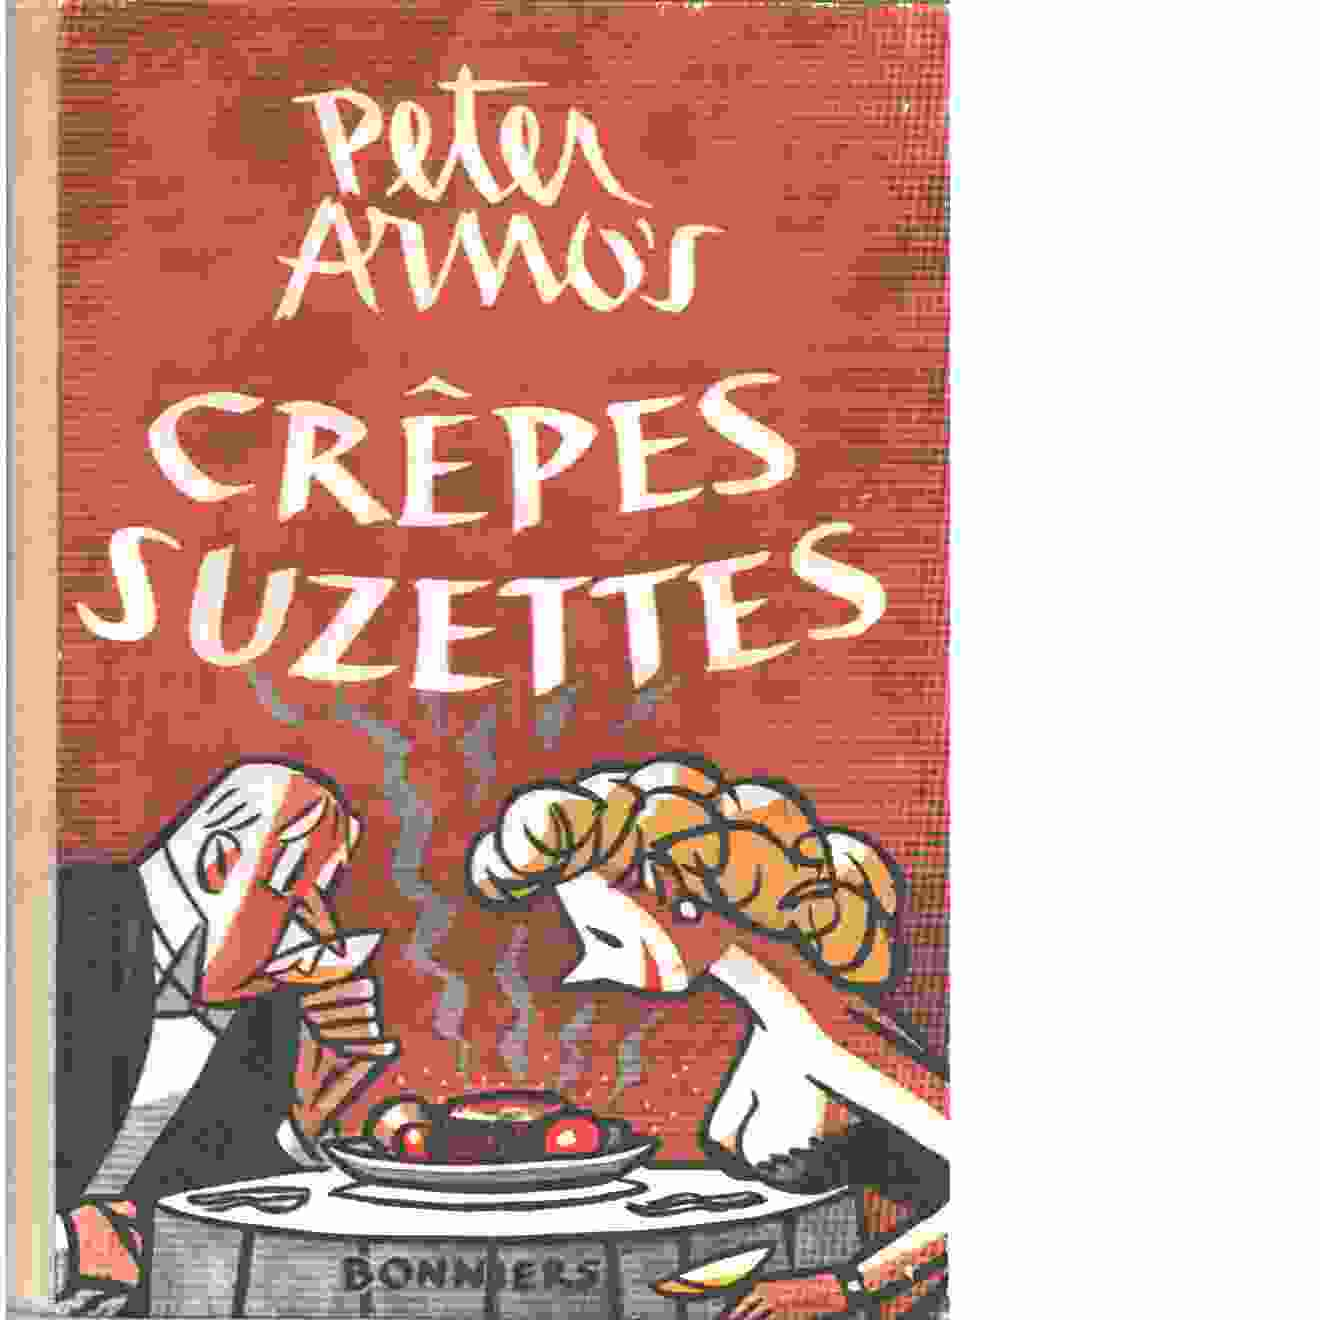 Peter Arno's crêpes suzettes - Peters, Curtis Arnoux